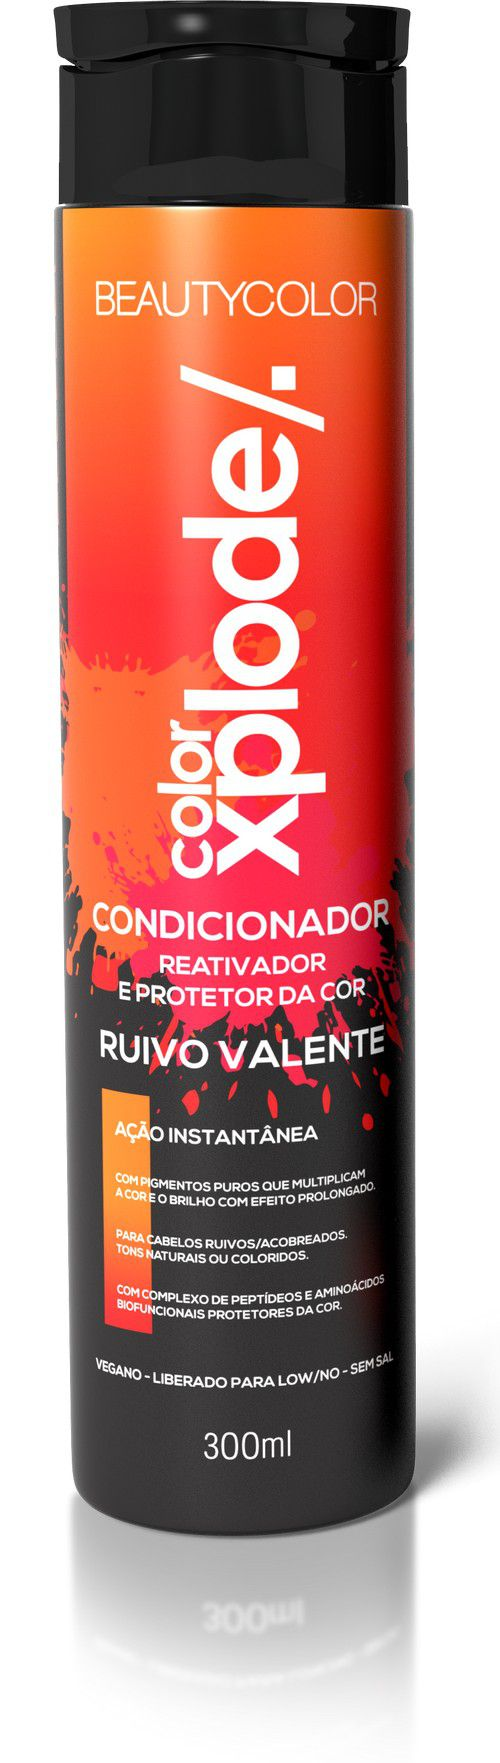 Beauty Color Condicionador Ruivo Valente Reativador e Protetor da Cor - 300ml